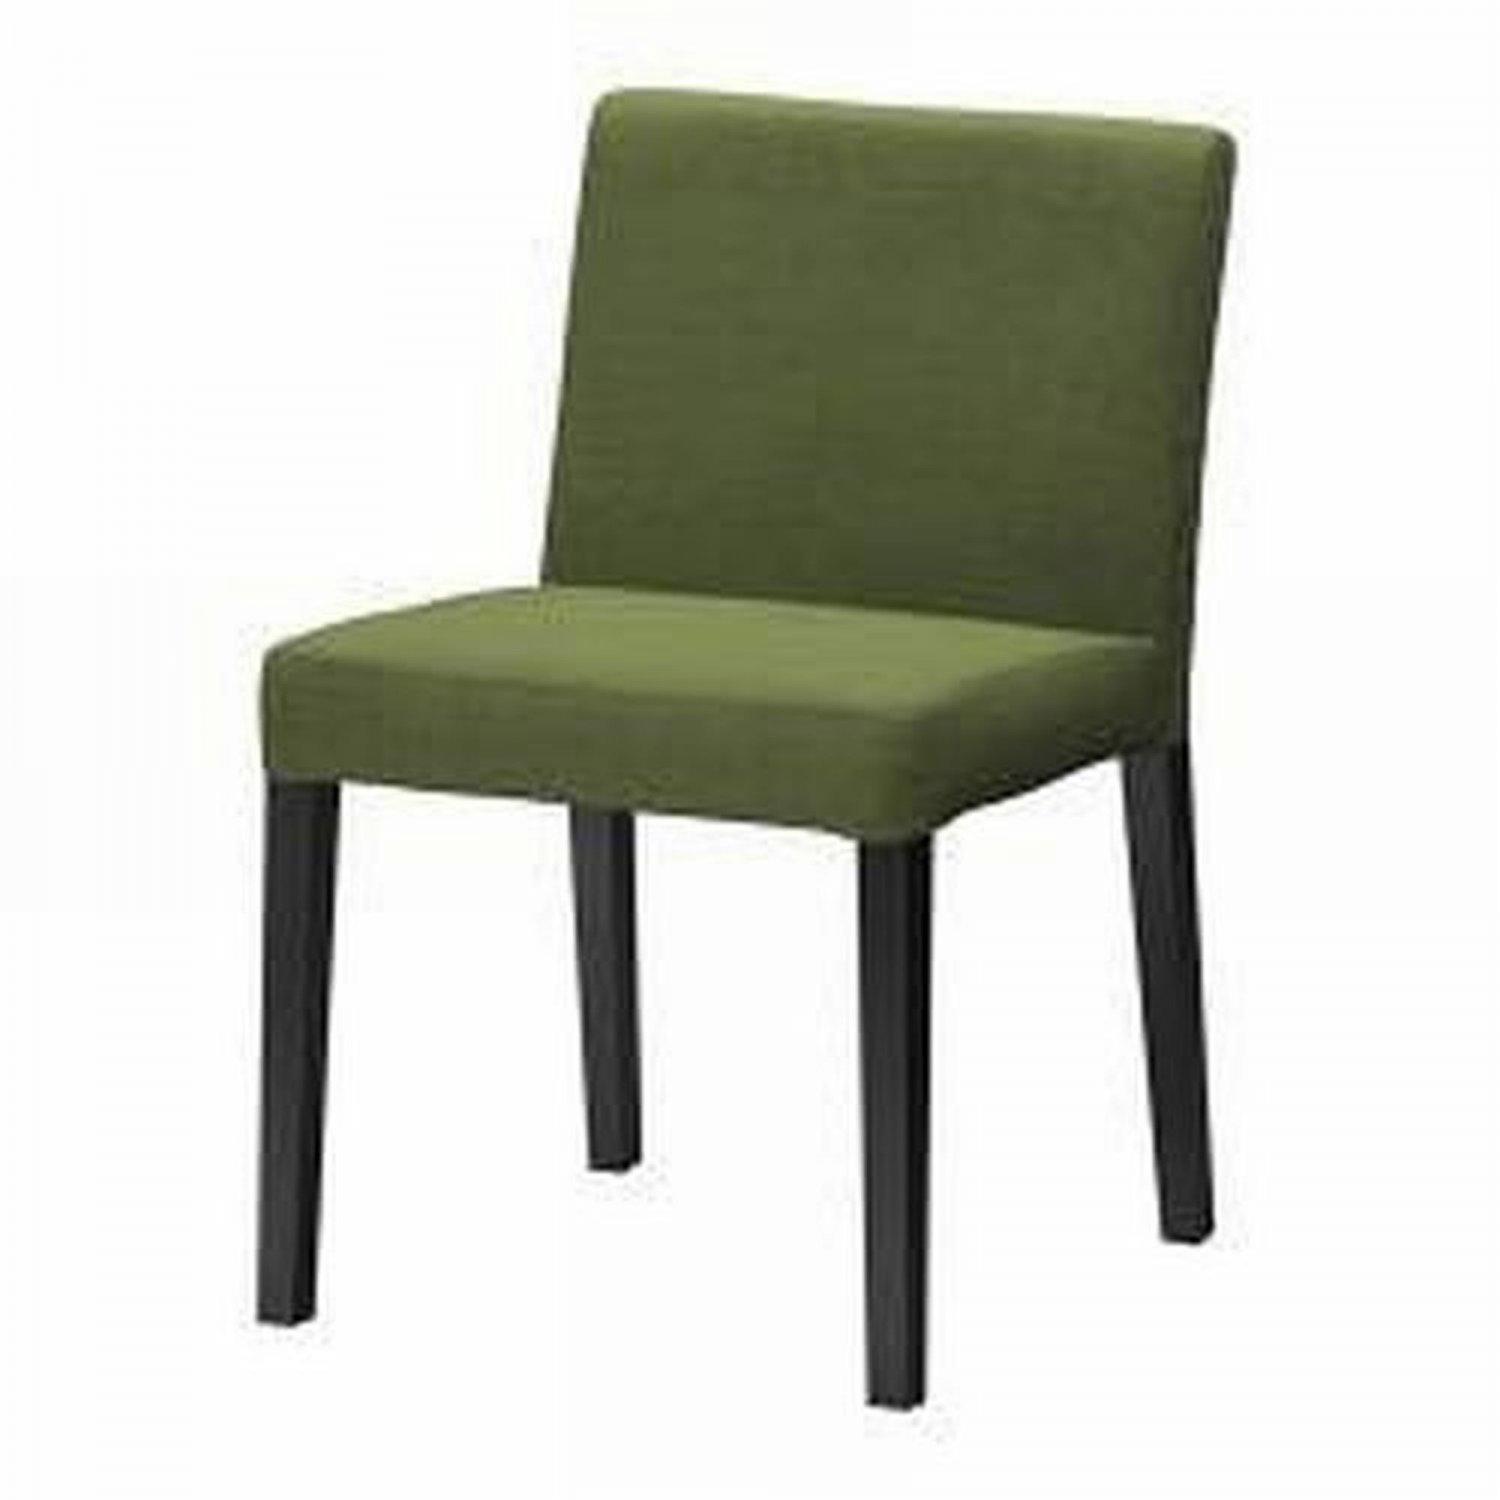 ikea nils dining chair slipcover cover sivik dark green. Black Bedroom Furniture Sets. Home Design Ideas